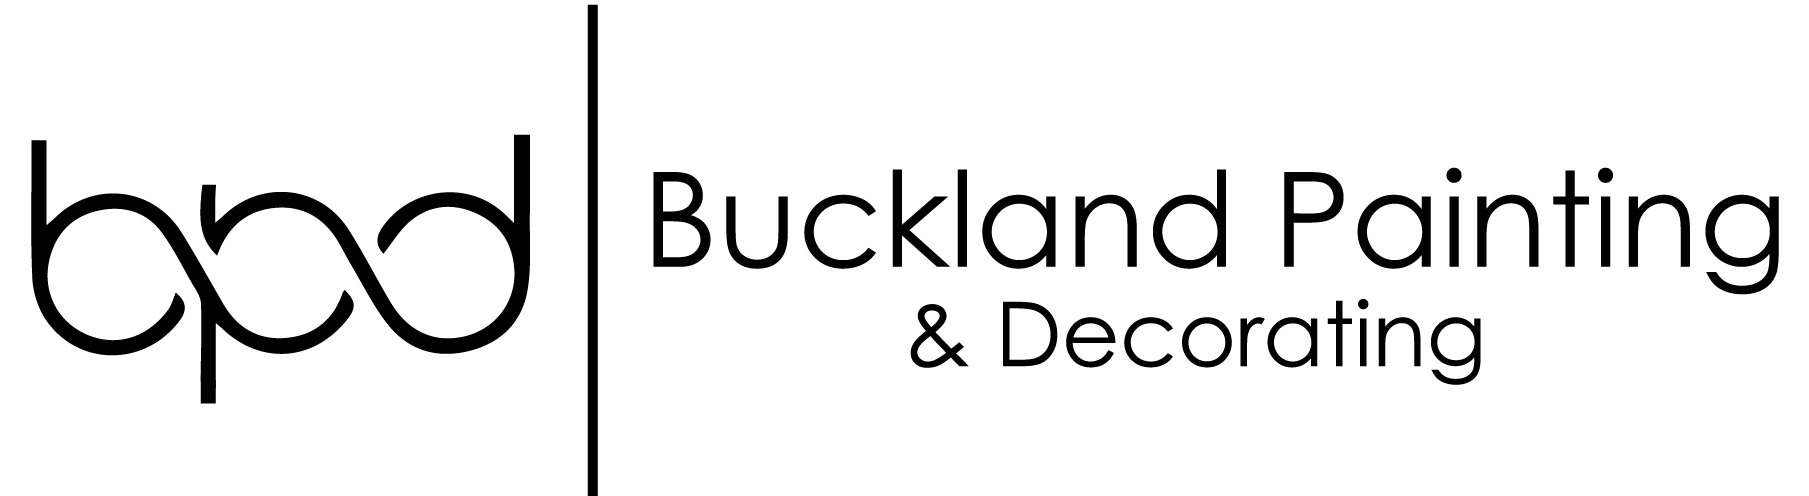 Buckland Painting & Decorating